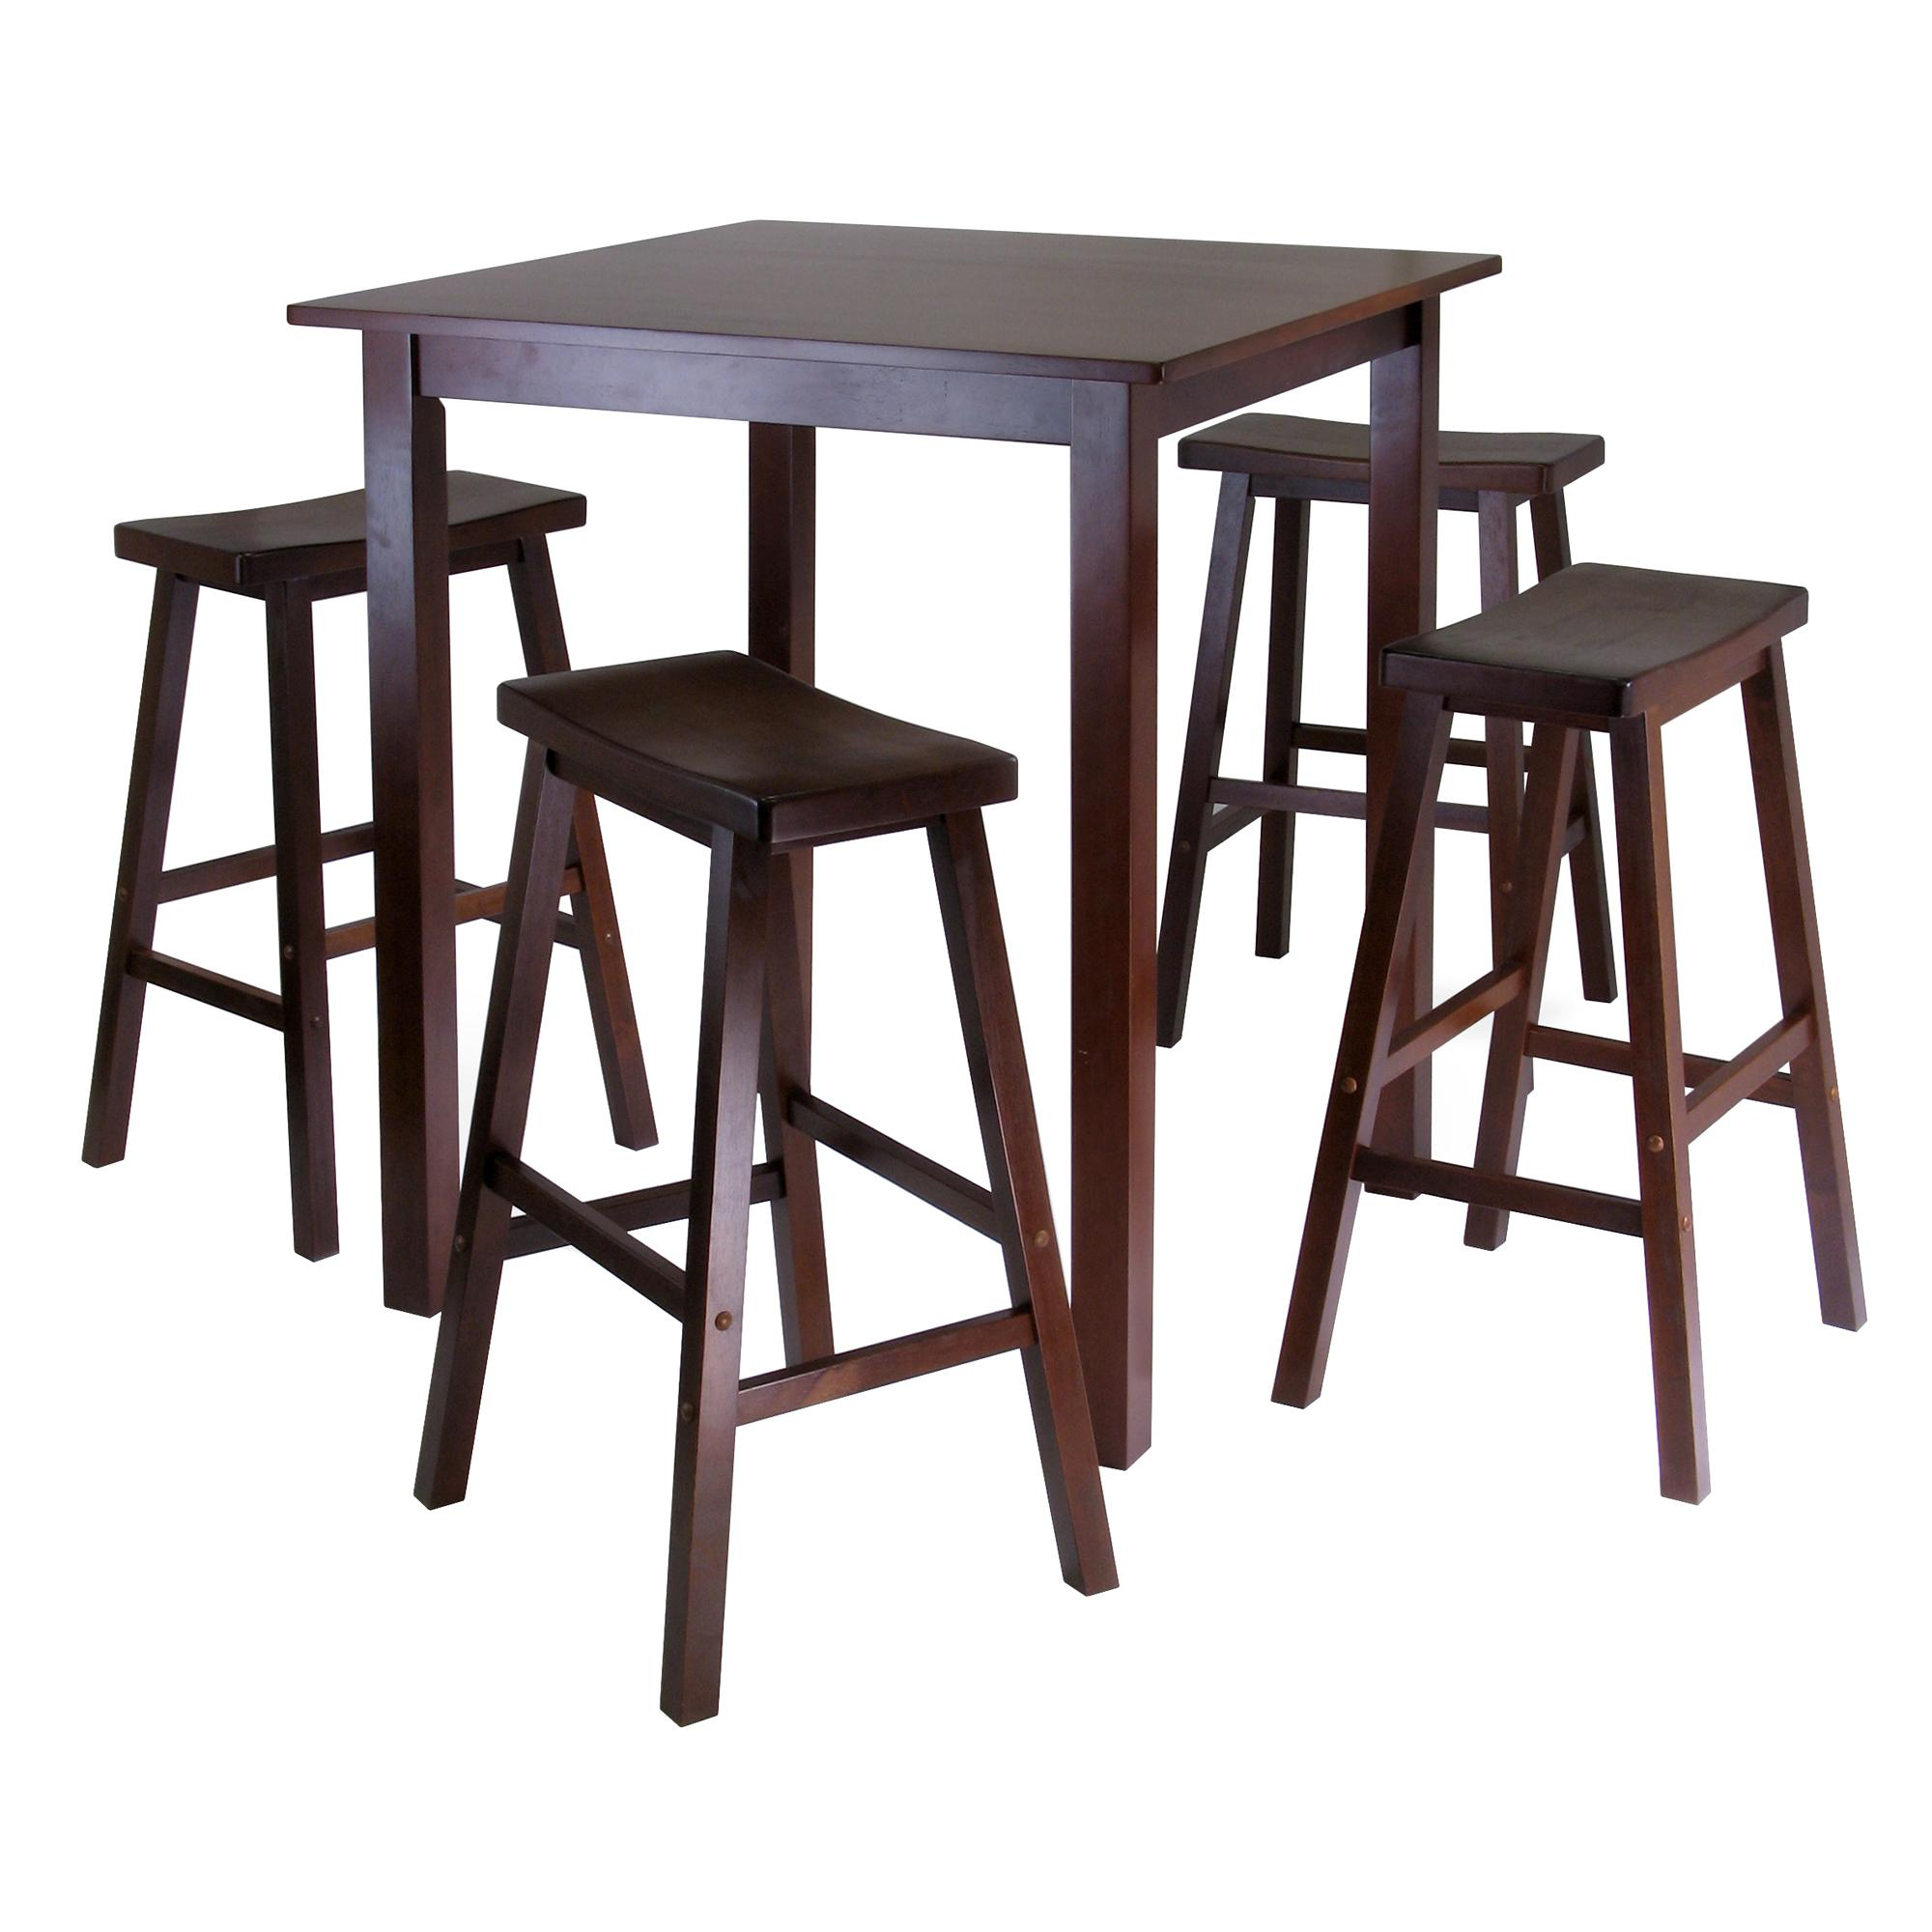 View larger  sc 1 st  Amazon.com & Amazon.com: Winsomeu0027s Parkland 5-Piece Square High/Pub Table Set ... islam-shia.org